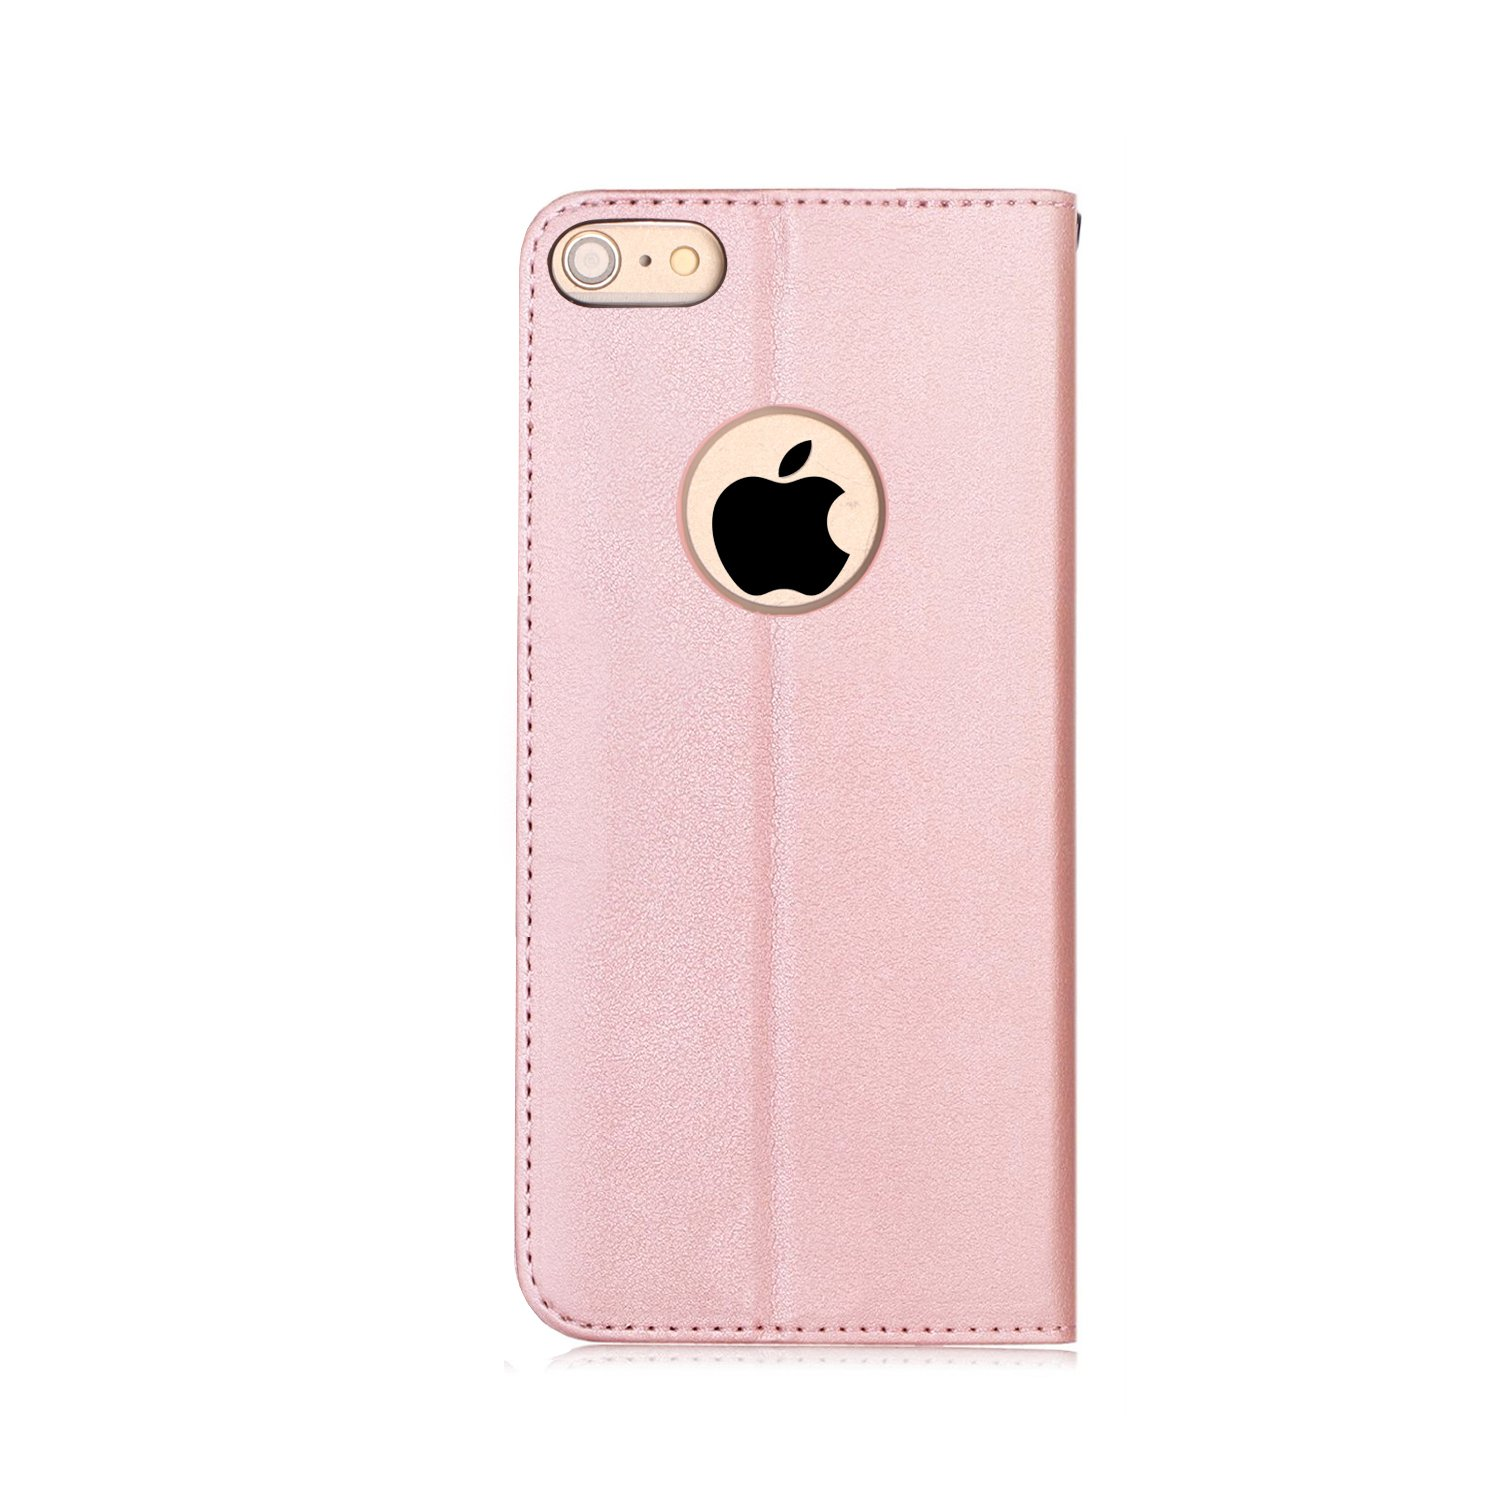 FYY Luxury PU Leather Wallet Case for iPhone 6S Plus/iPhone 6 Plus, [Kickstand Feature] Flip Folio Case Cover with [Card Slots] and [Note Pockets] for Apple iPhone 6 Plus/6S Plus (5.5'') Rose Gold by FYY (Image #10)